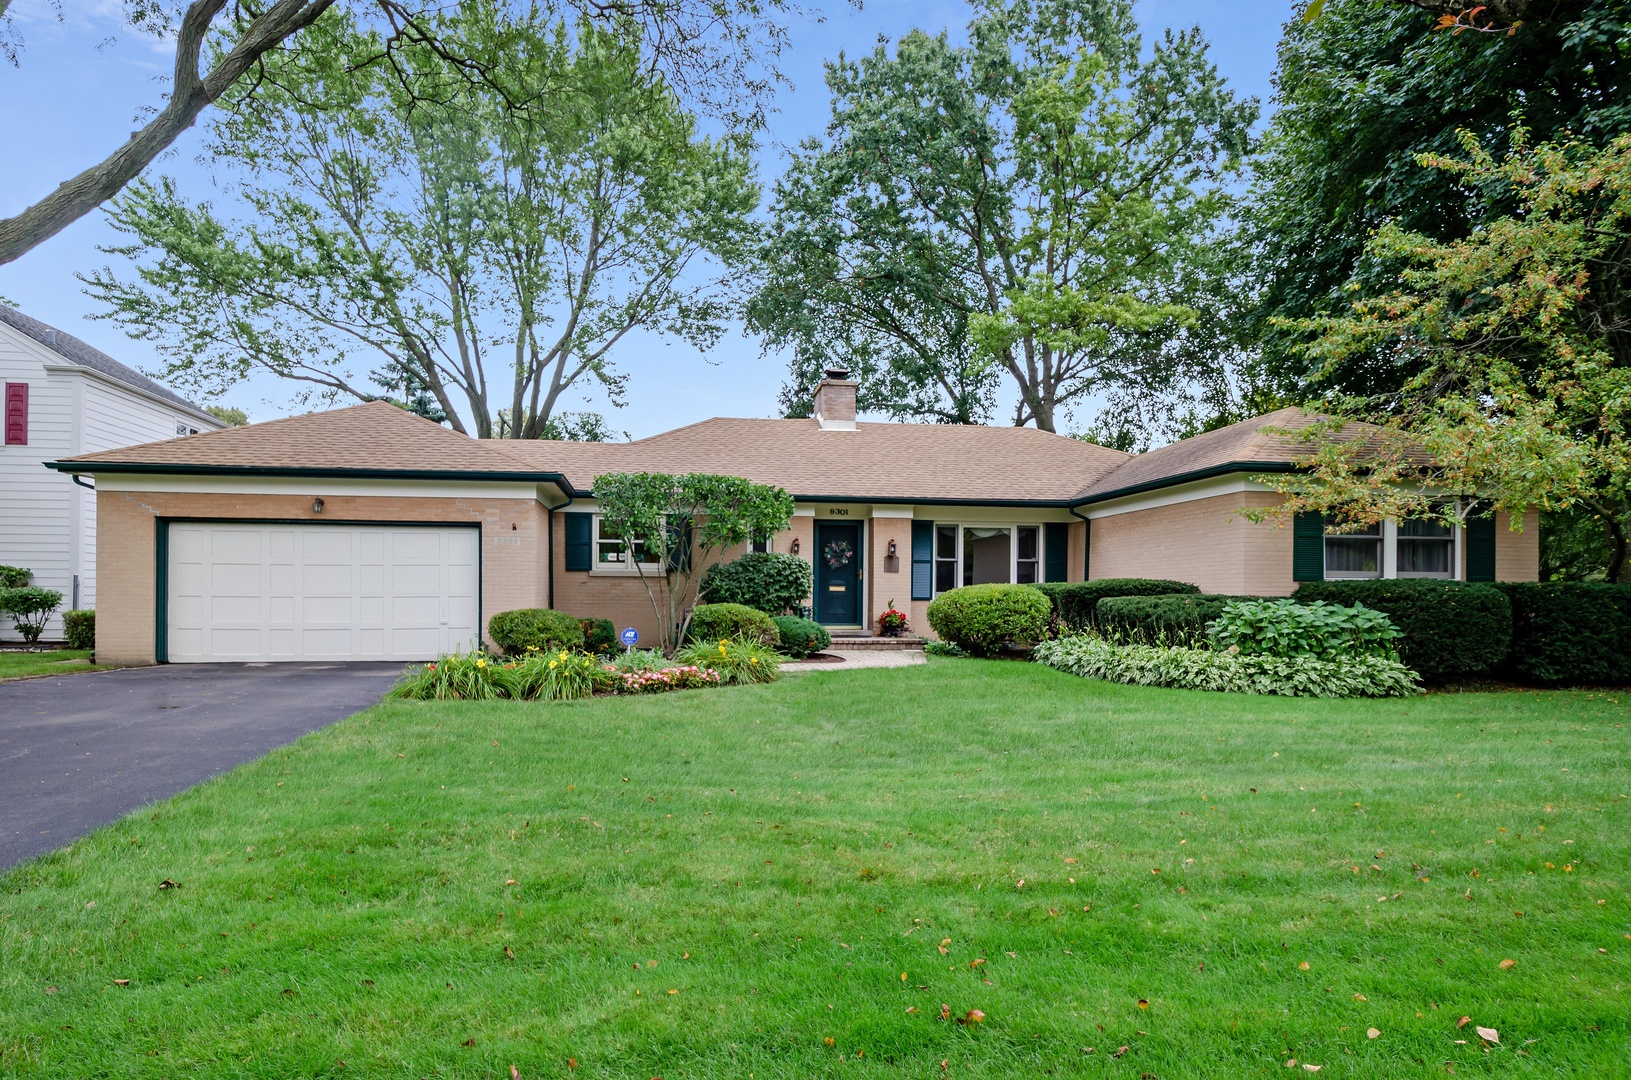 9301 Ridgeway Avenue, Evanston in Cook County, IL 60203 Home for Sale